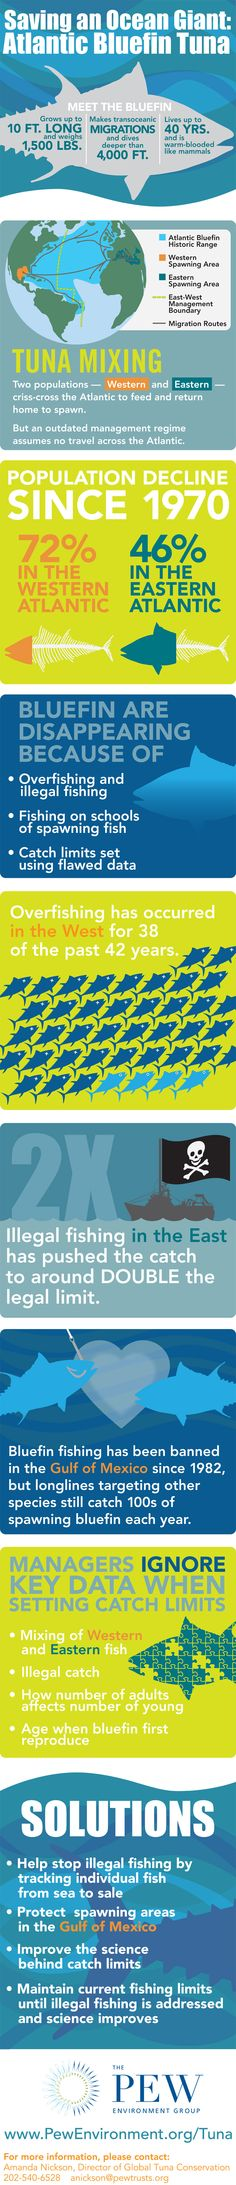 Atlantic Bluefin tuna infographic from Pew